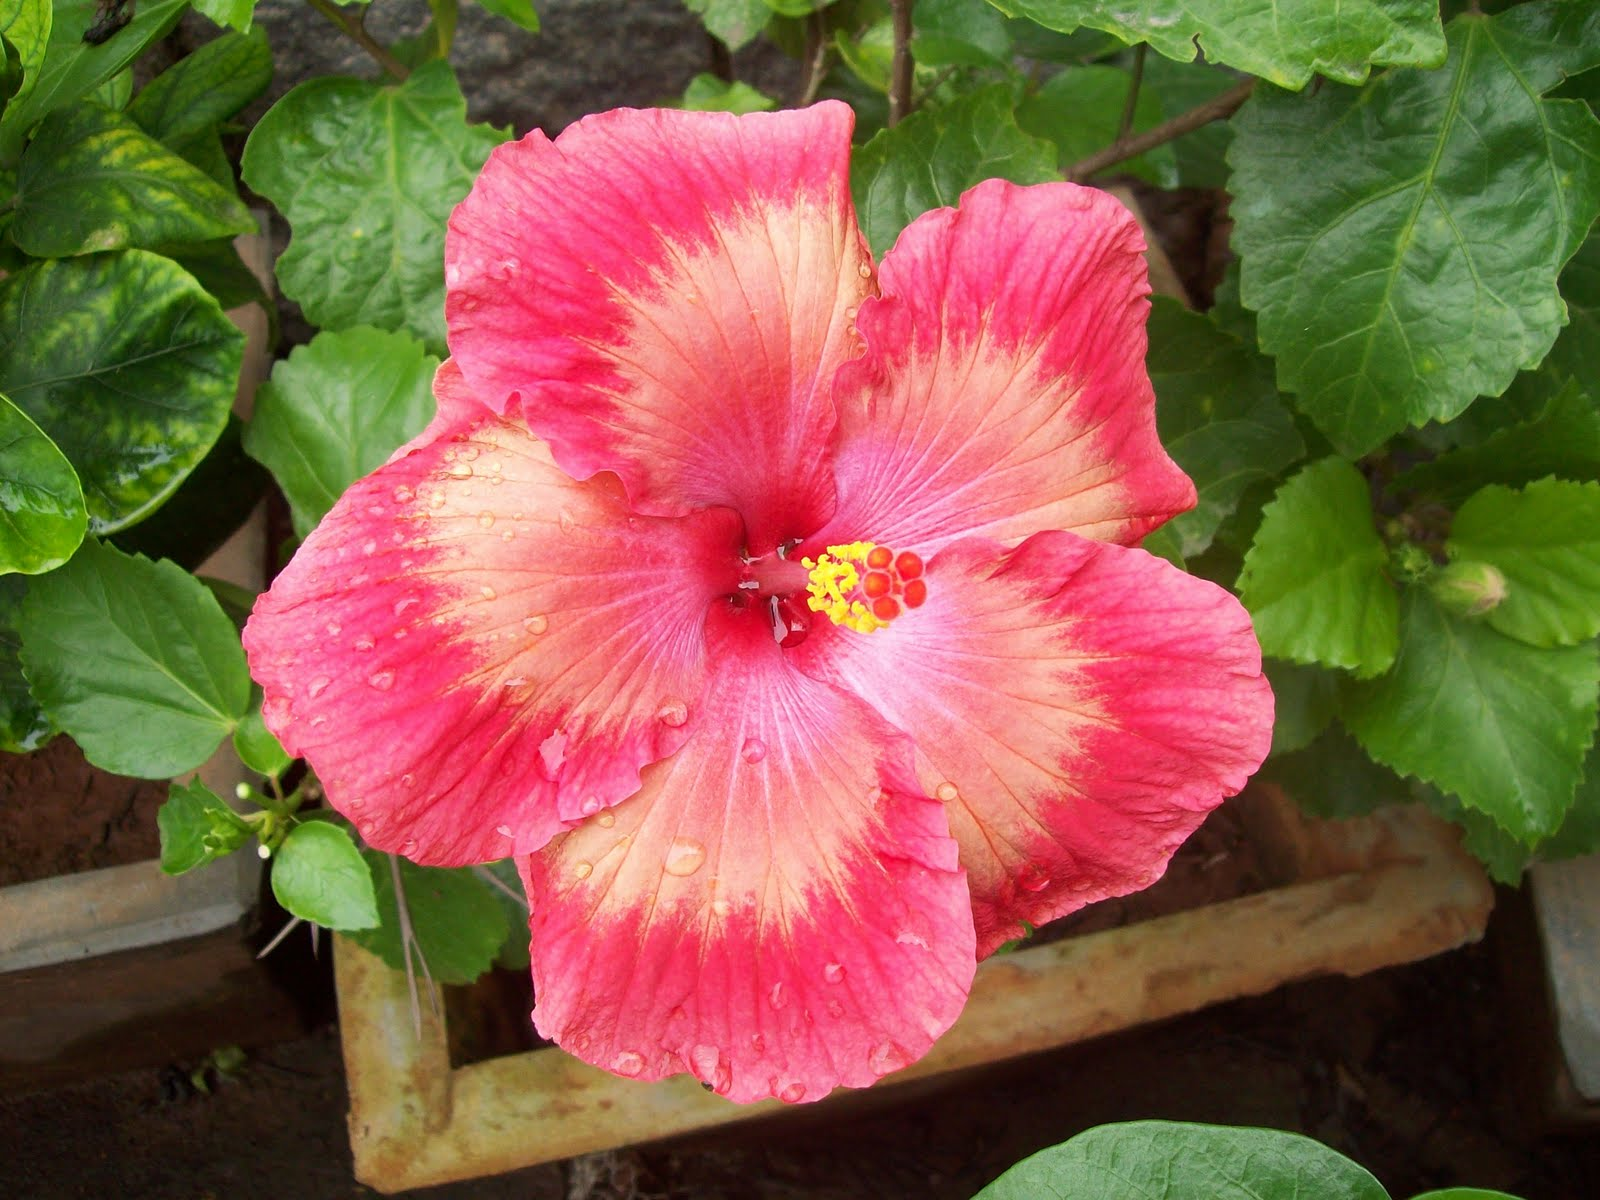 gardentropics  Today s Flowers   Hibiscus To see more flower from all over the world  please click on  http   flowersfromtoday blogspot com  This is also my contribution to  Noel s  The Hot